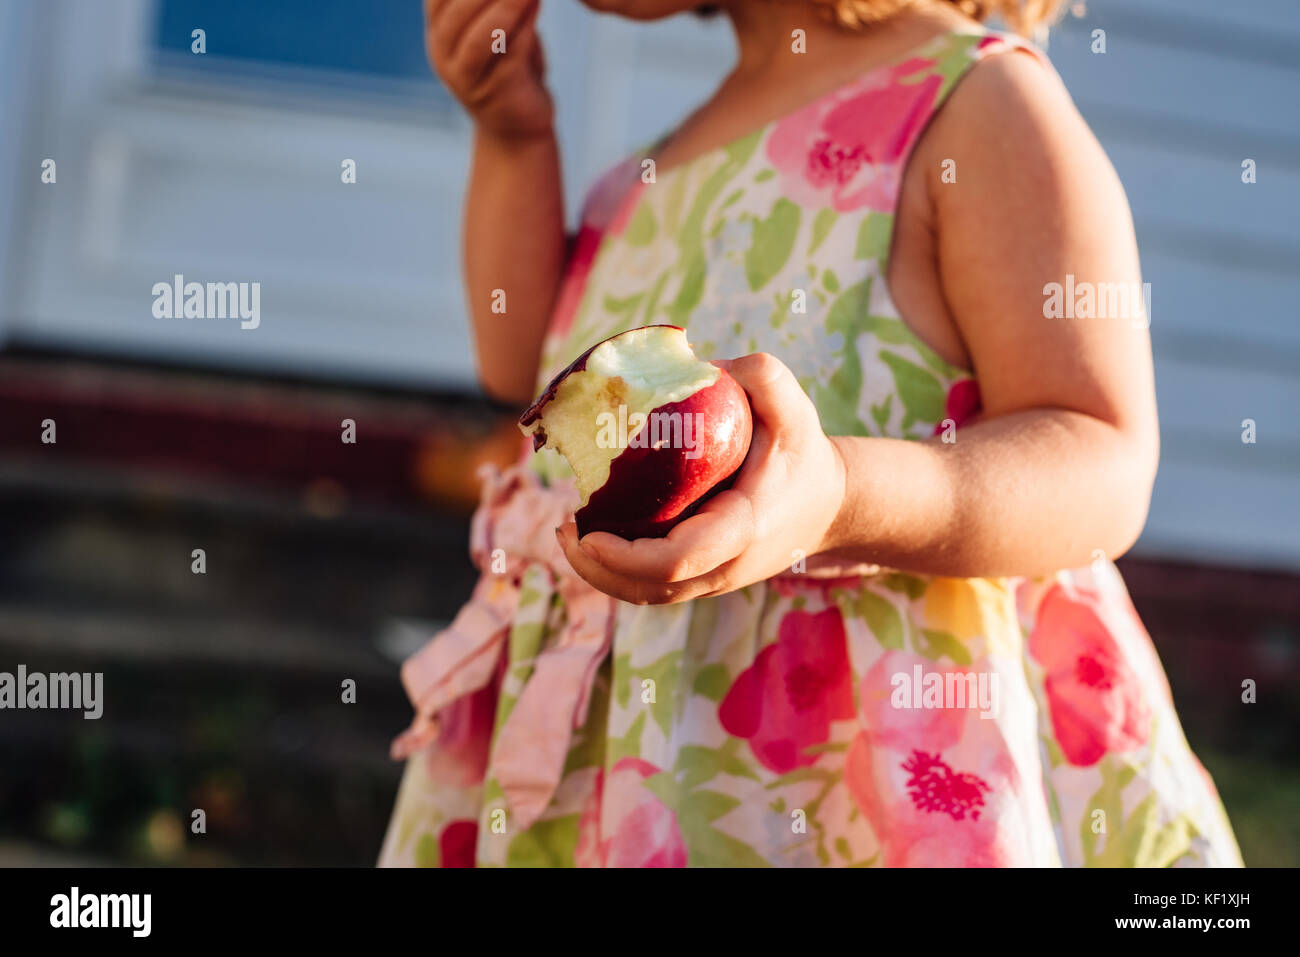 2-3 year old holding half eaten apple. - Stock Image